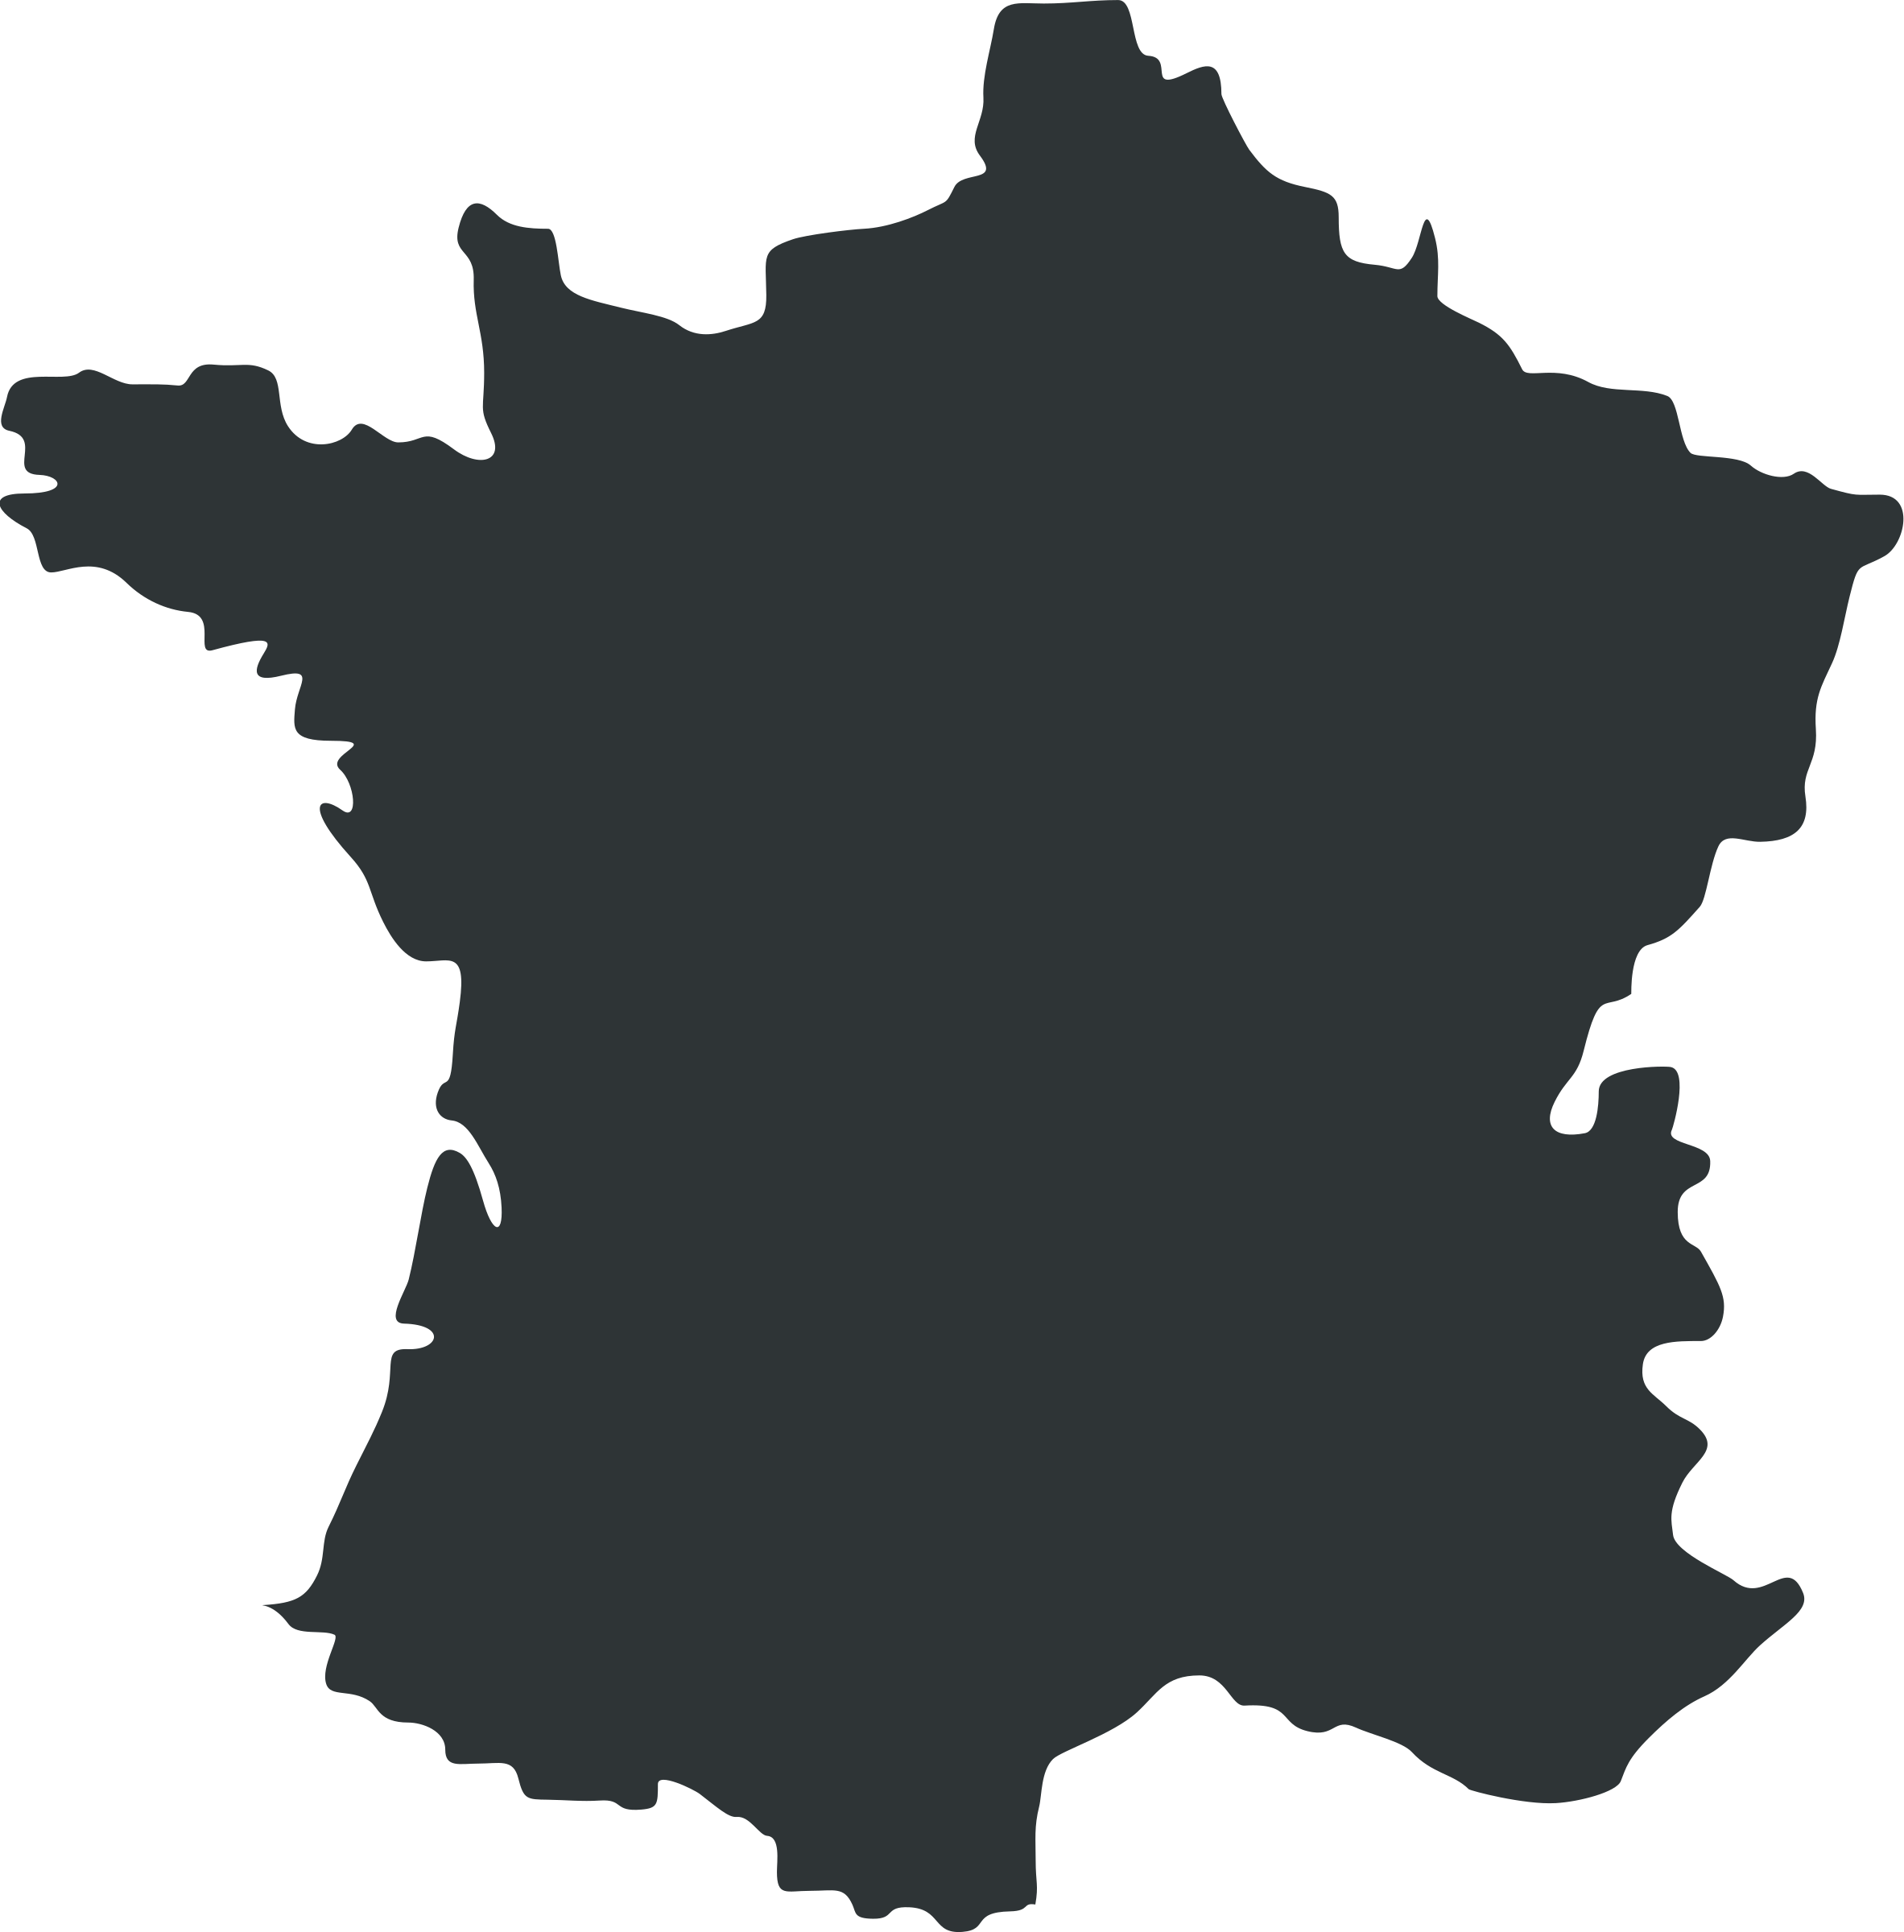 France map transparent png stickpng world landmarks global gumiabroncs Images